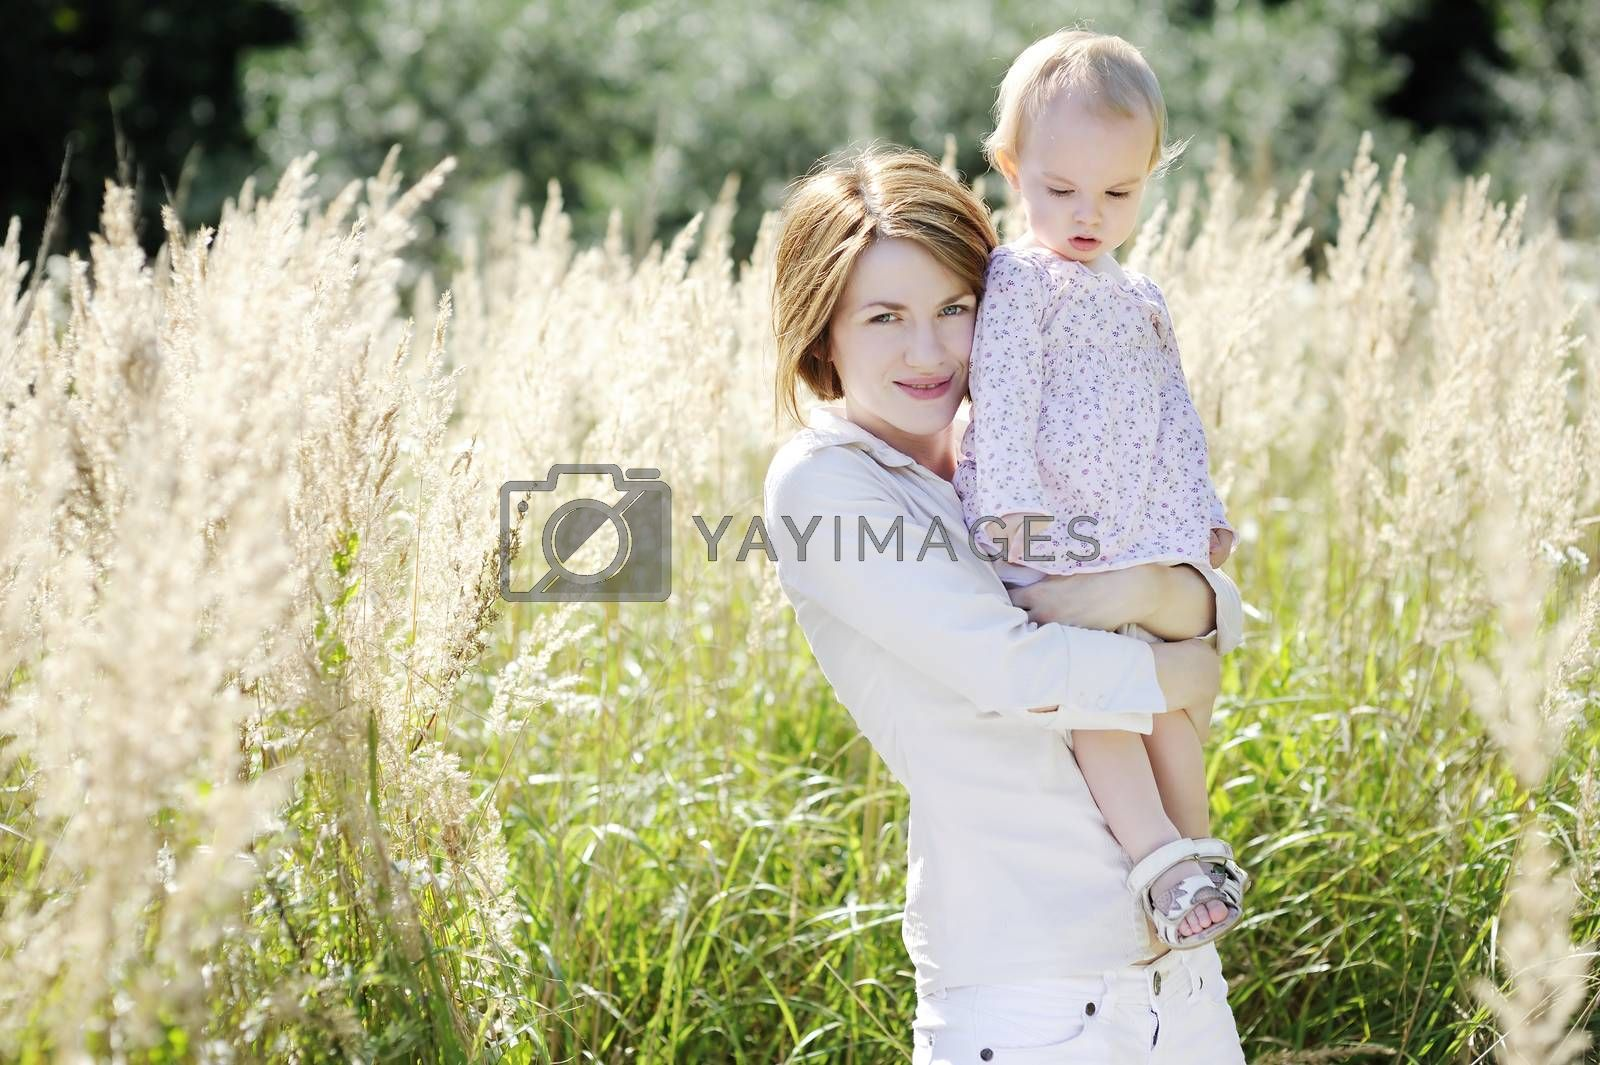 Young mother and her toddler girl in the grass